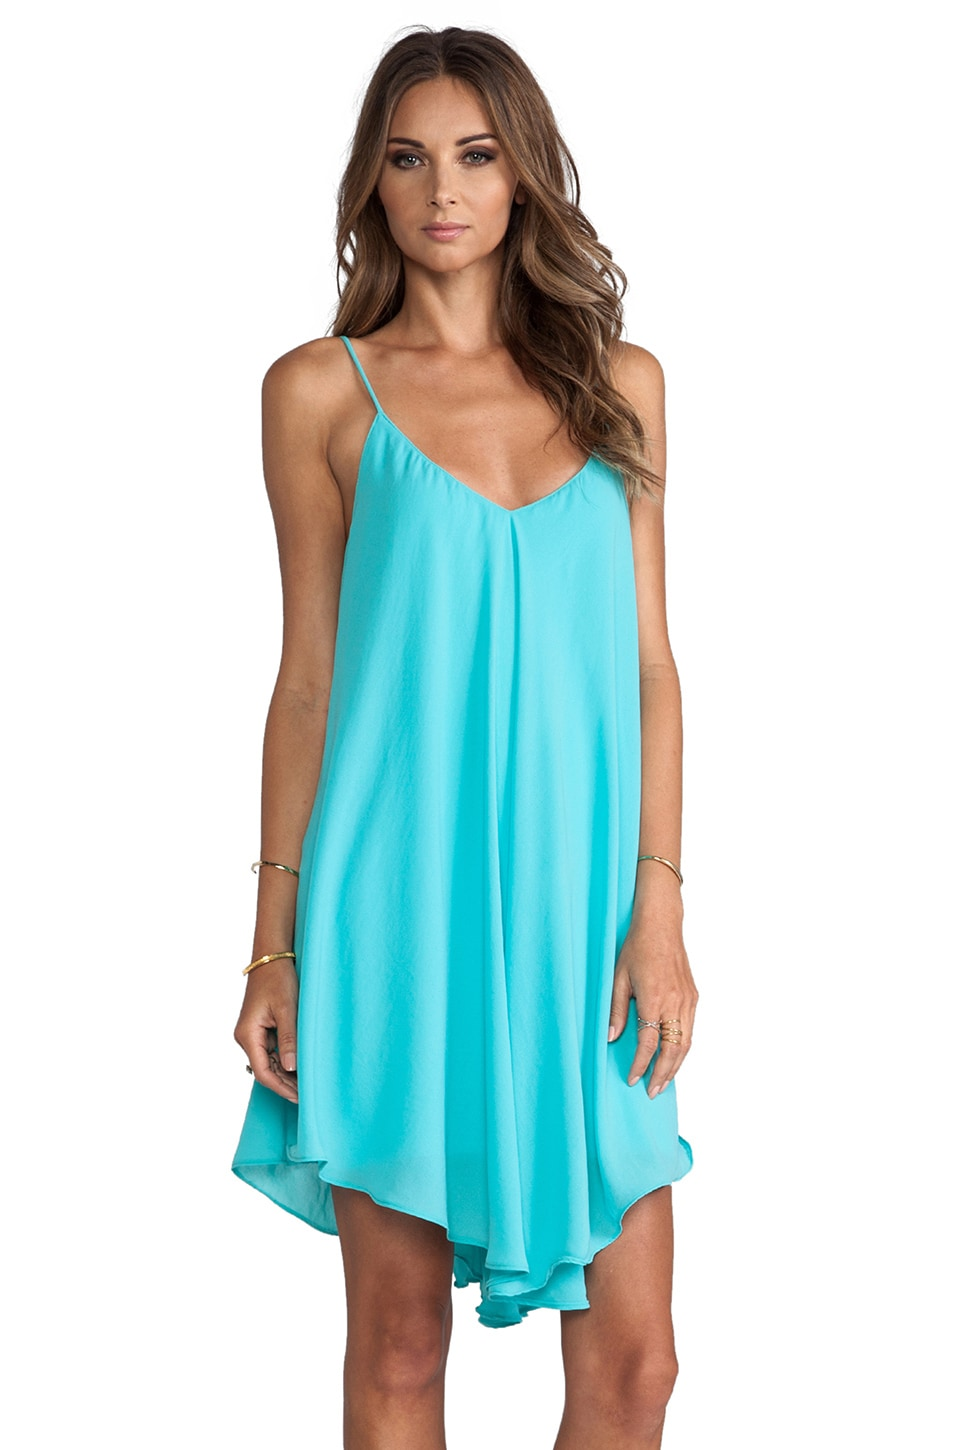 Backstage x REVOLVE Modern Love Dress in Aqua